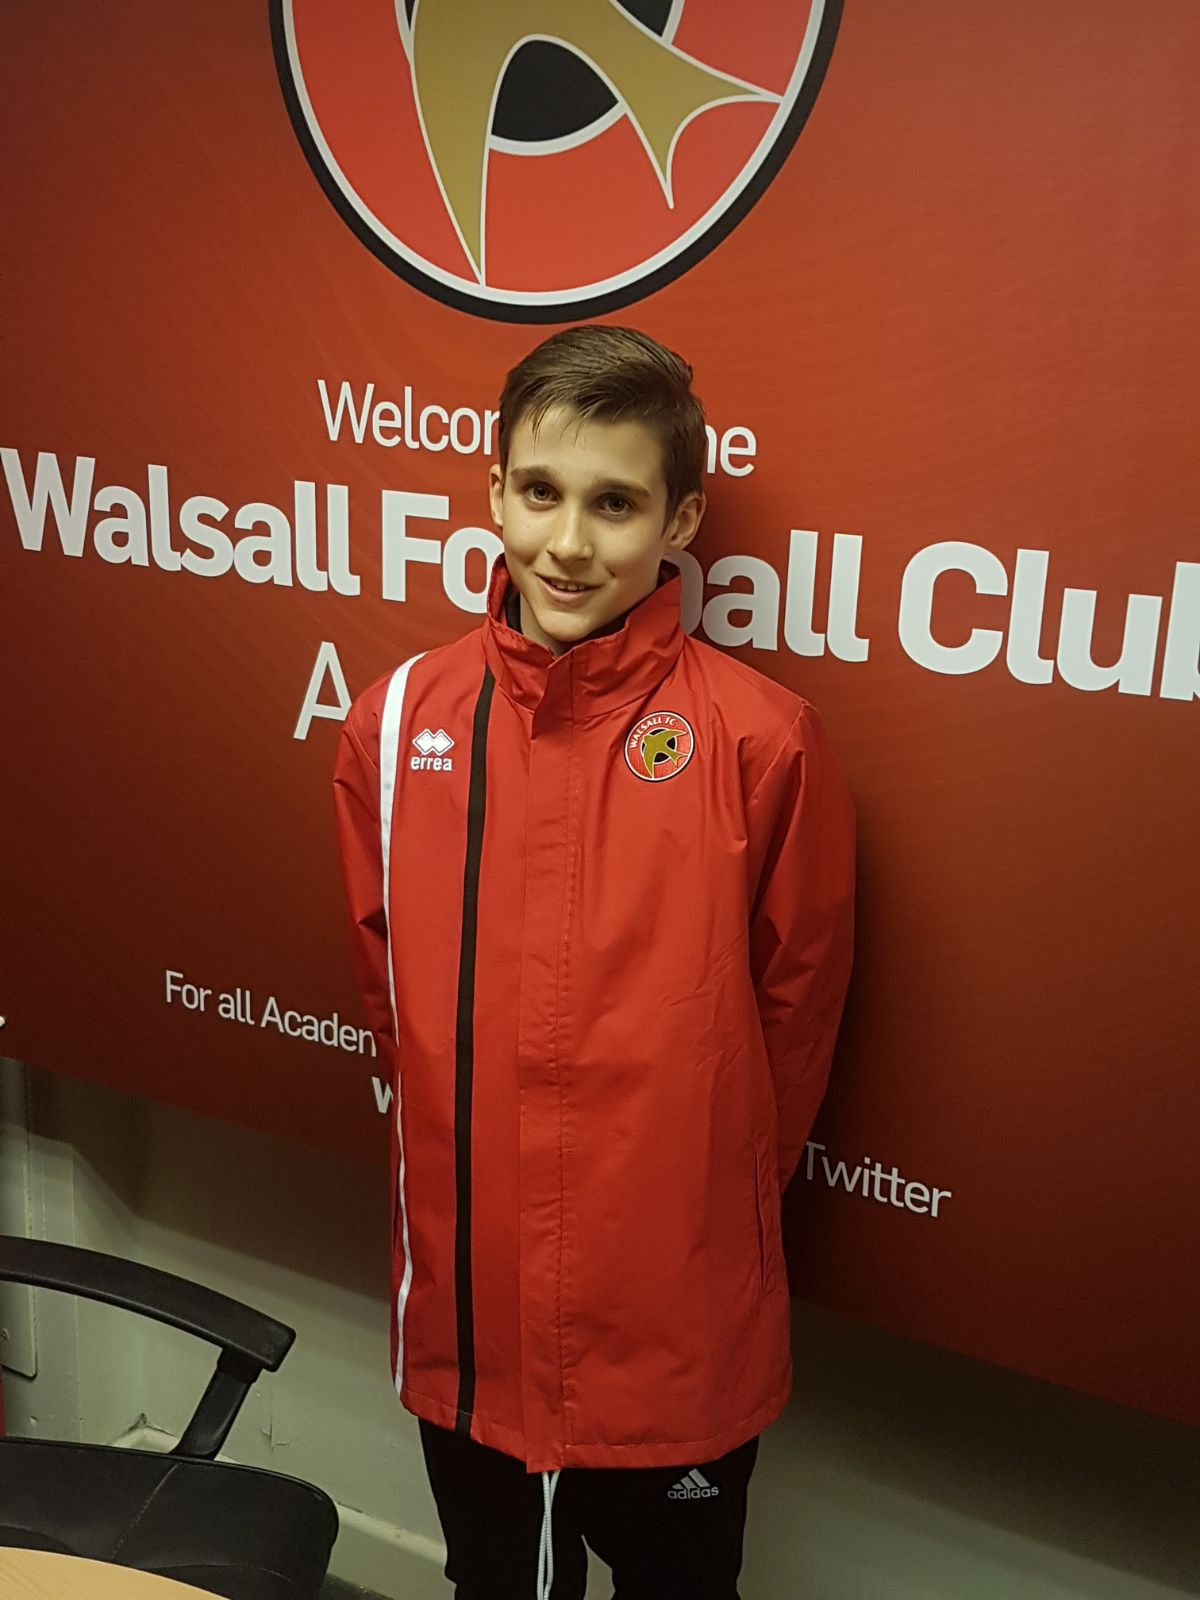 ELLIOTT BALL - AGE: 12CLUB: WALSALL FCPOSITION: LEFT WING / RIGHT WING / FORWARDSTARTED IPDA: 12TH MARCH 2016SIGNED FOR ACADEMY: 27TH MARCH 2018